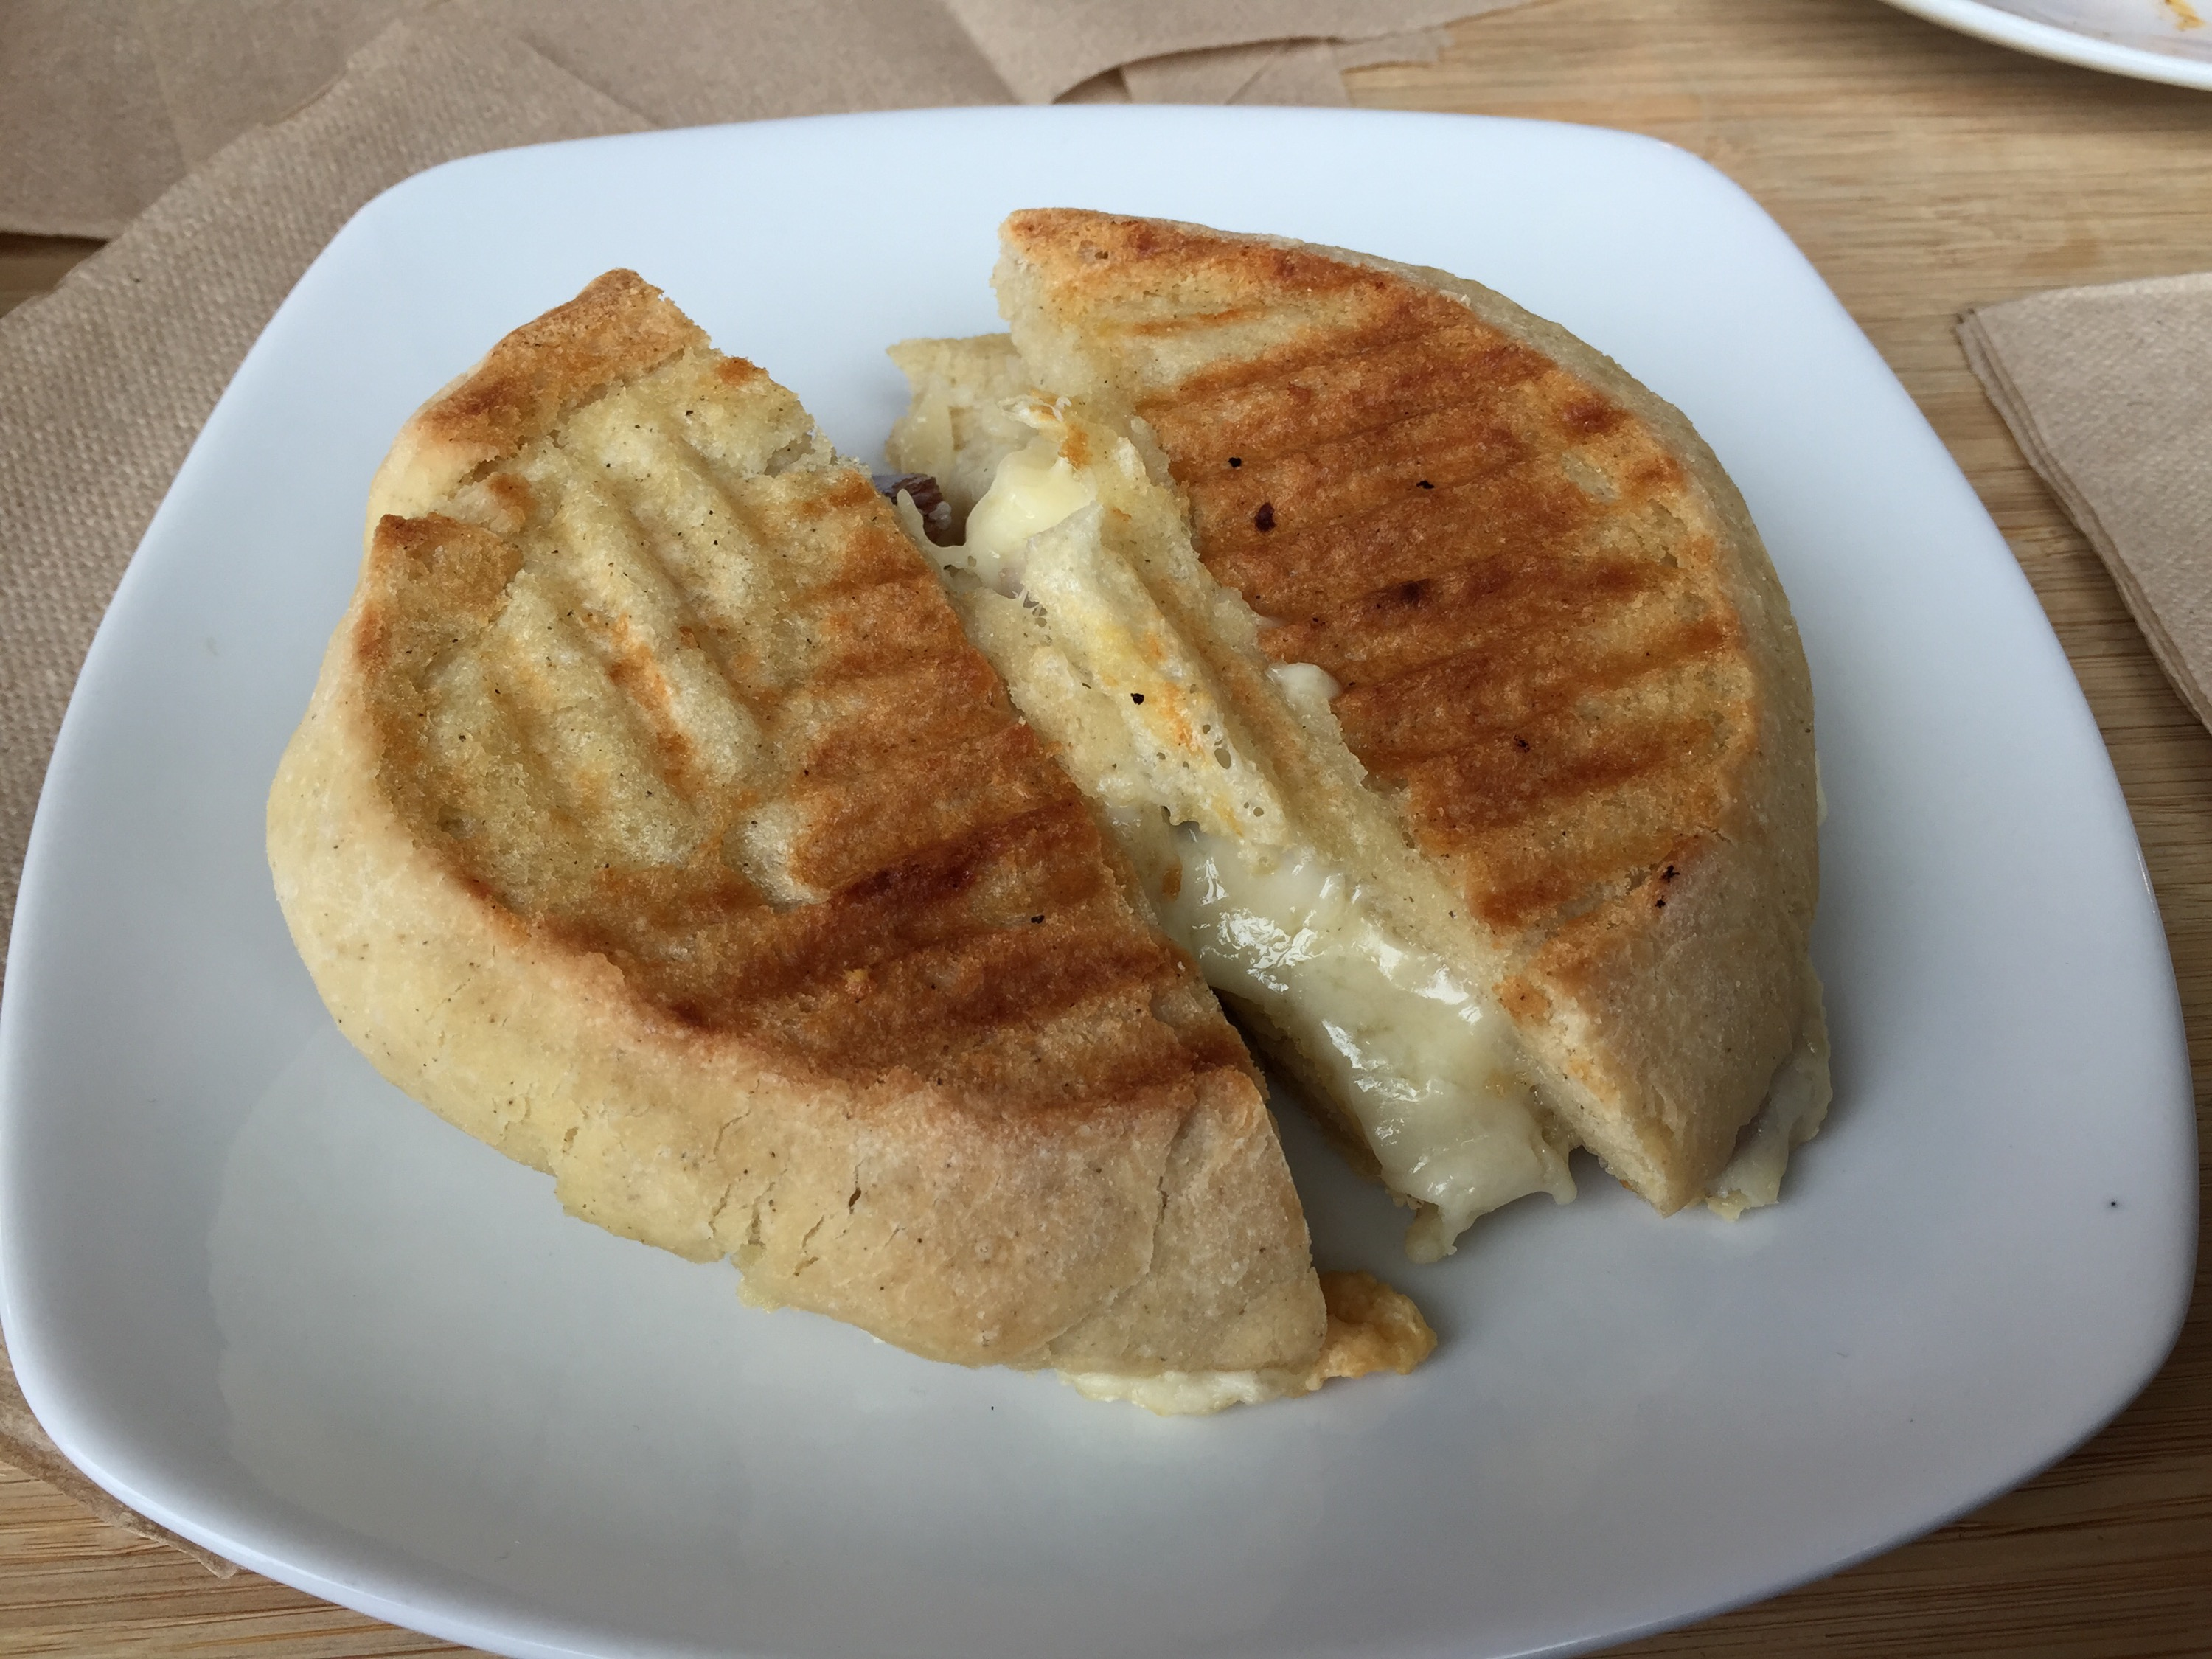 The panini with cheese and salami